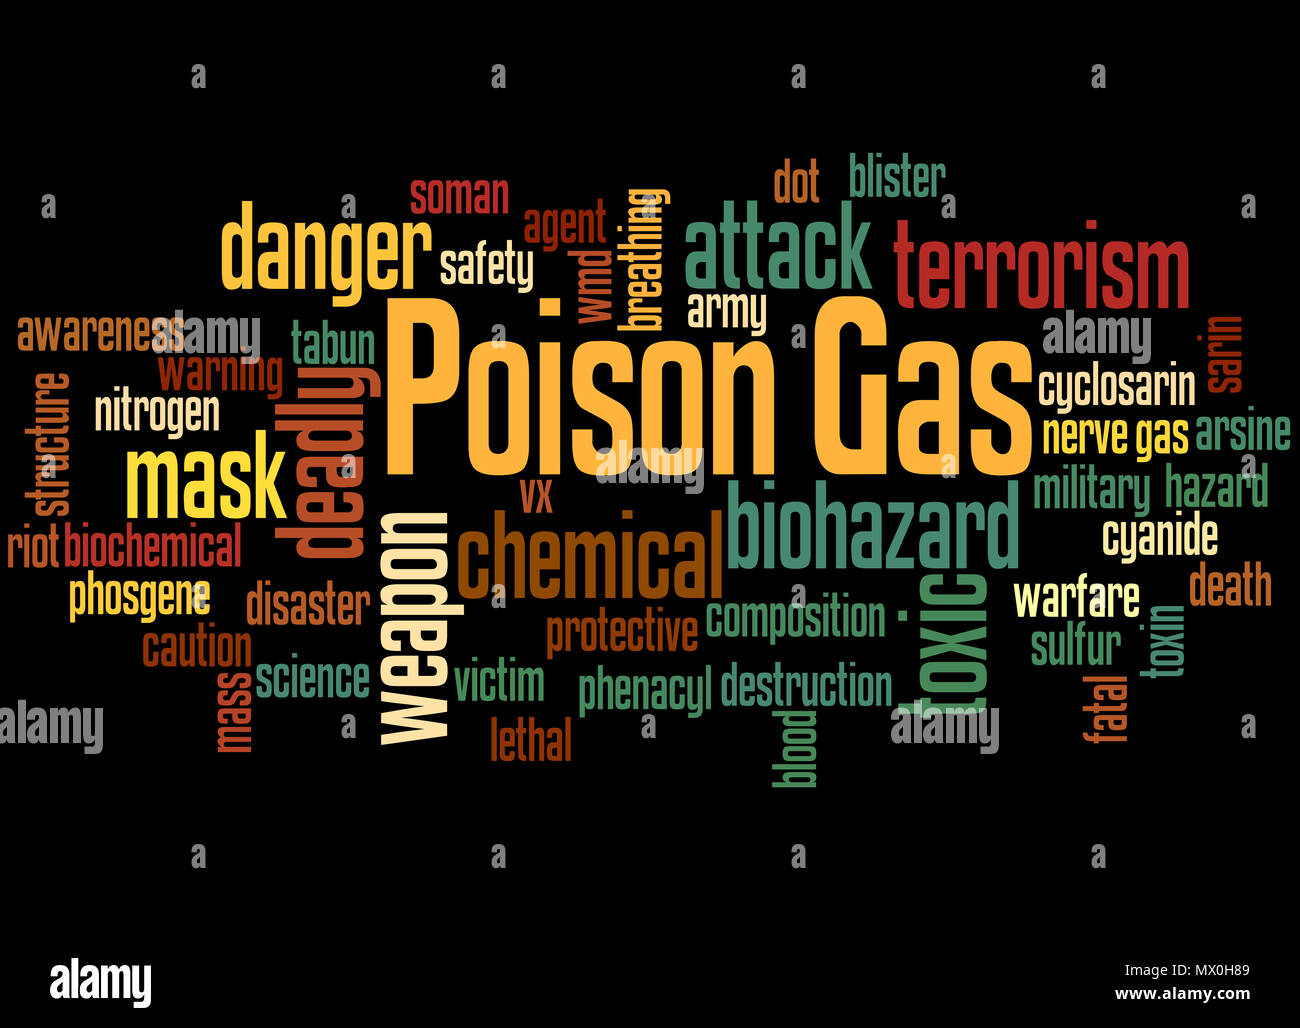 Poison gas word cloud concept on black background. - Stock Image